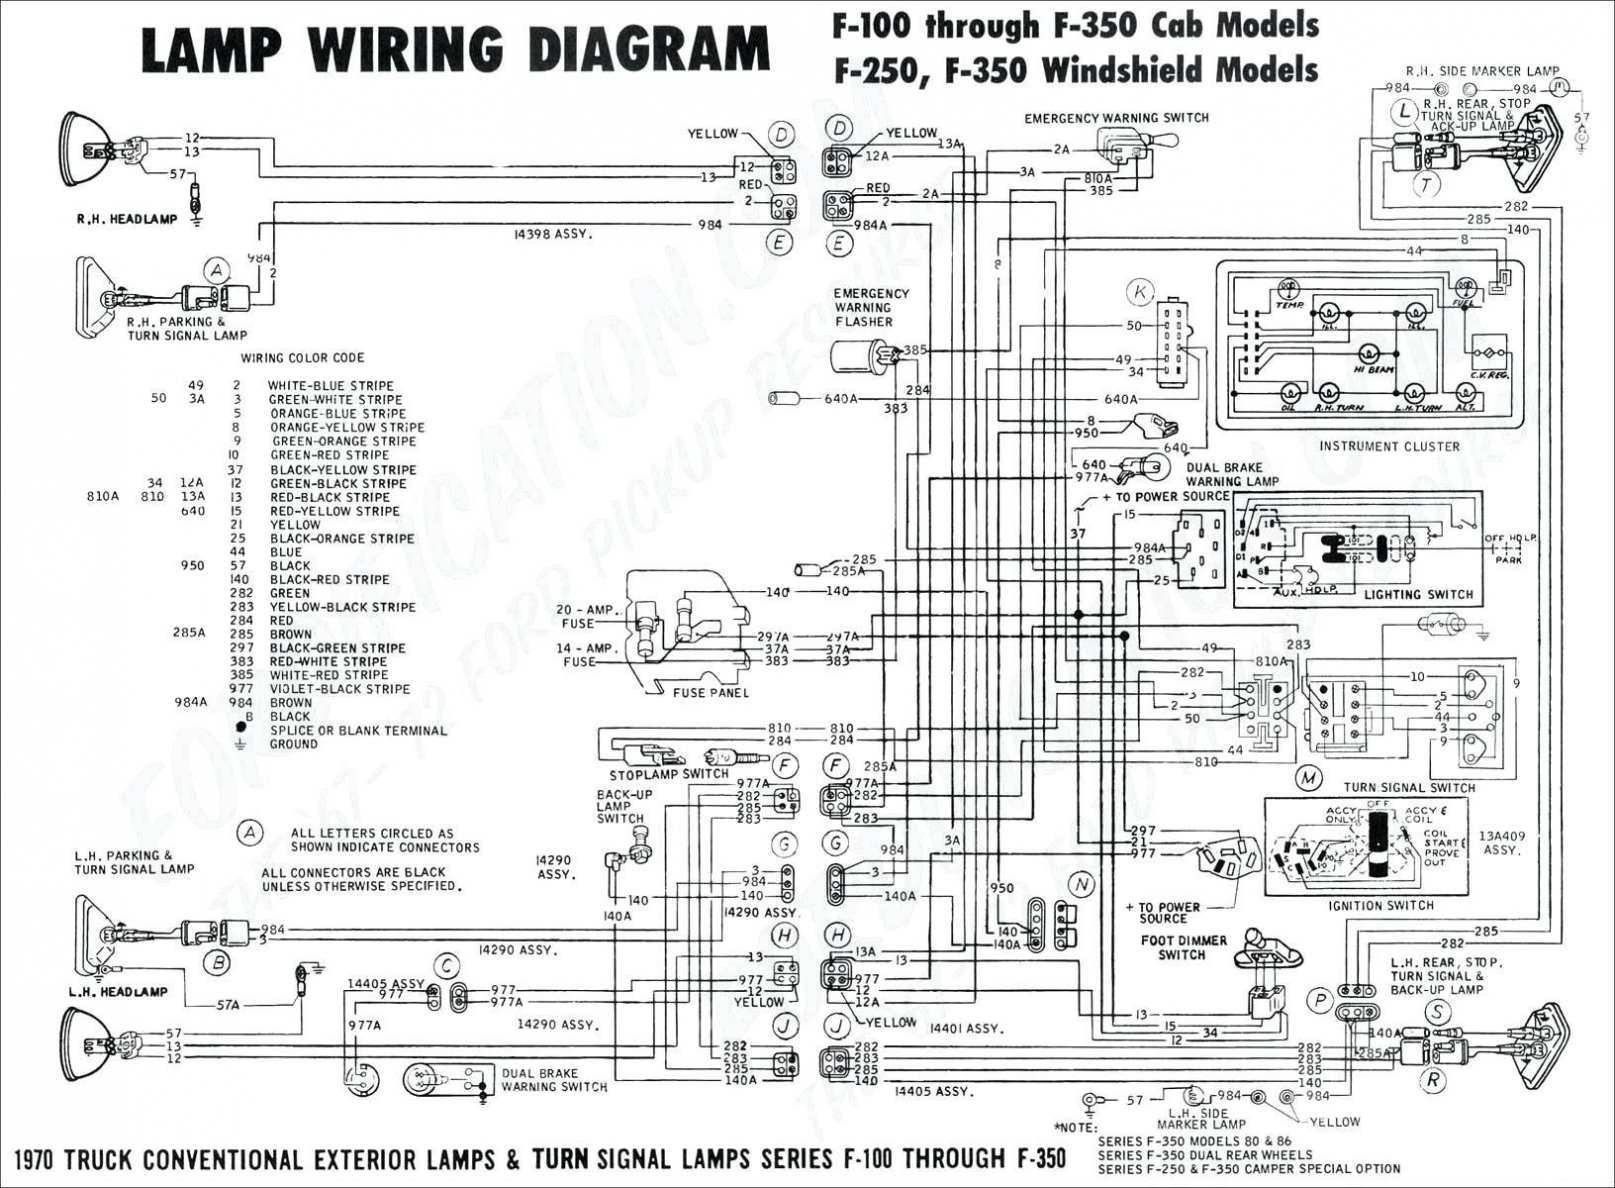 hight resolution of 1955 ford thunderbird also ford falcon fuse panel diagram wiring diagram in addition 1983 ford ltd crown victoria moreover 1964